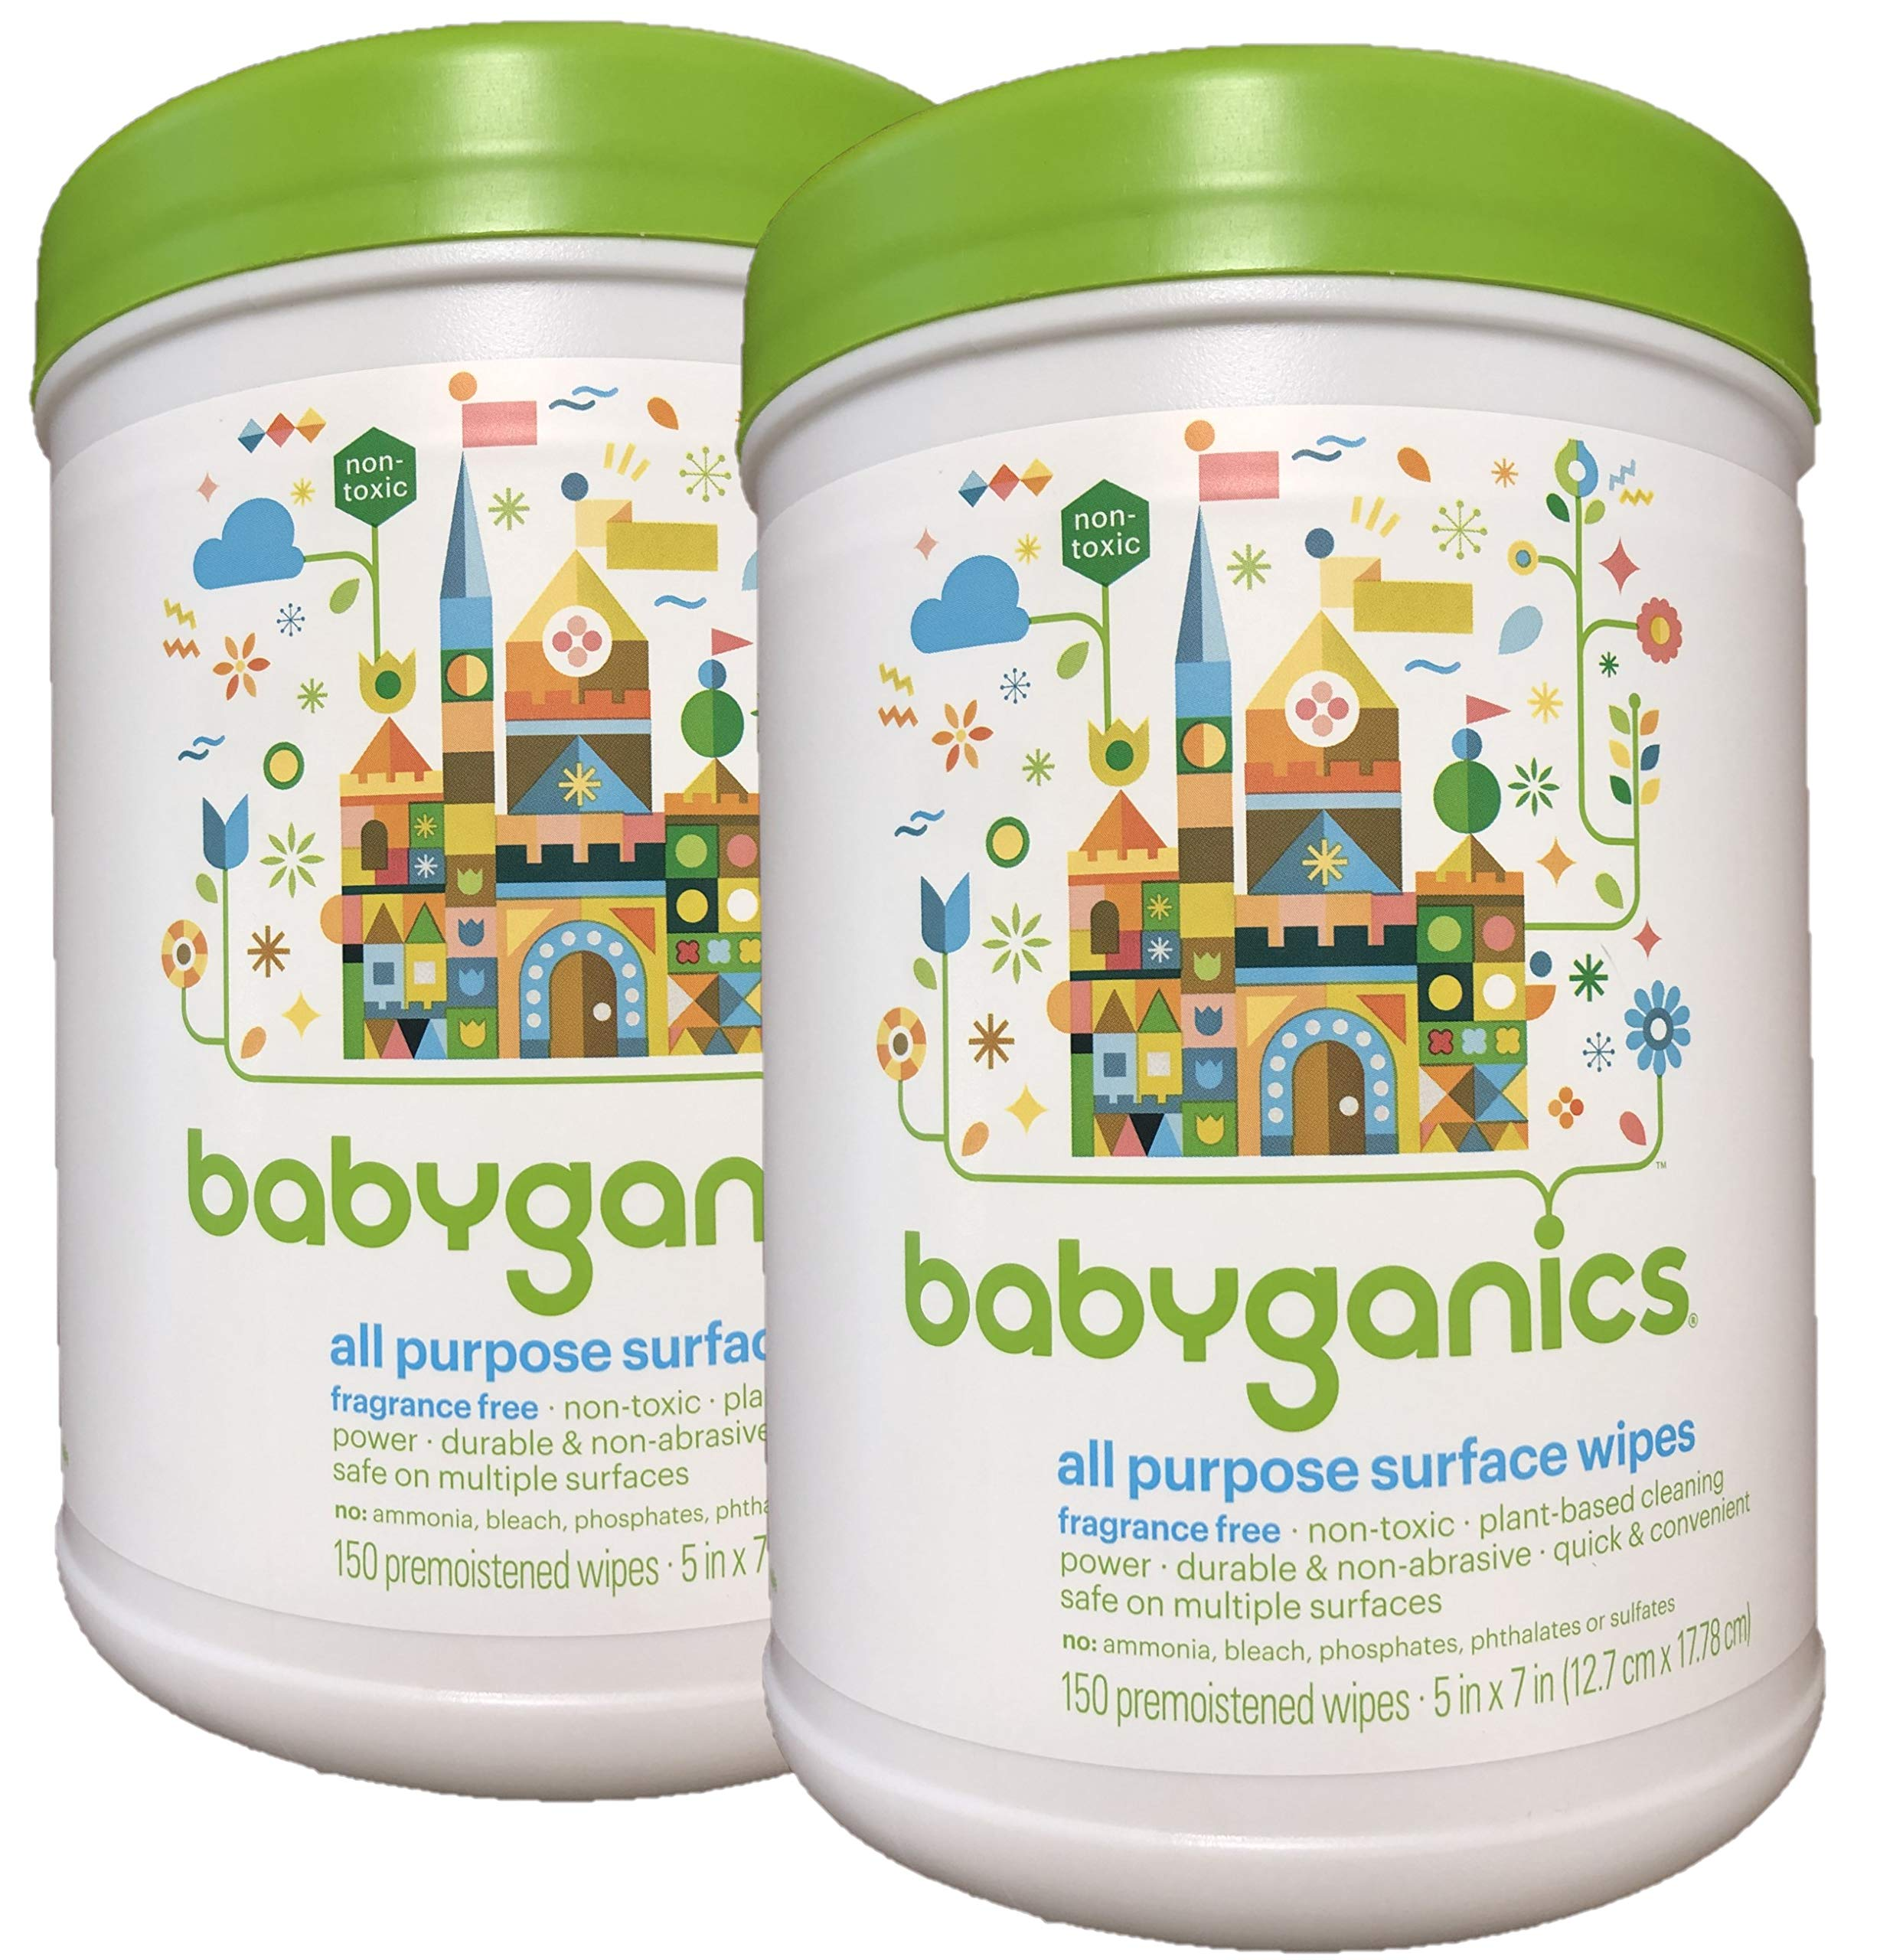 Babyganics All Purpose Surface Wipes, Fragrance Free, 300 Count (Contains Two 150-count canisters) by Babyganics